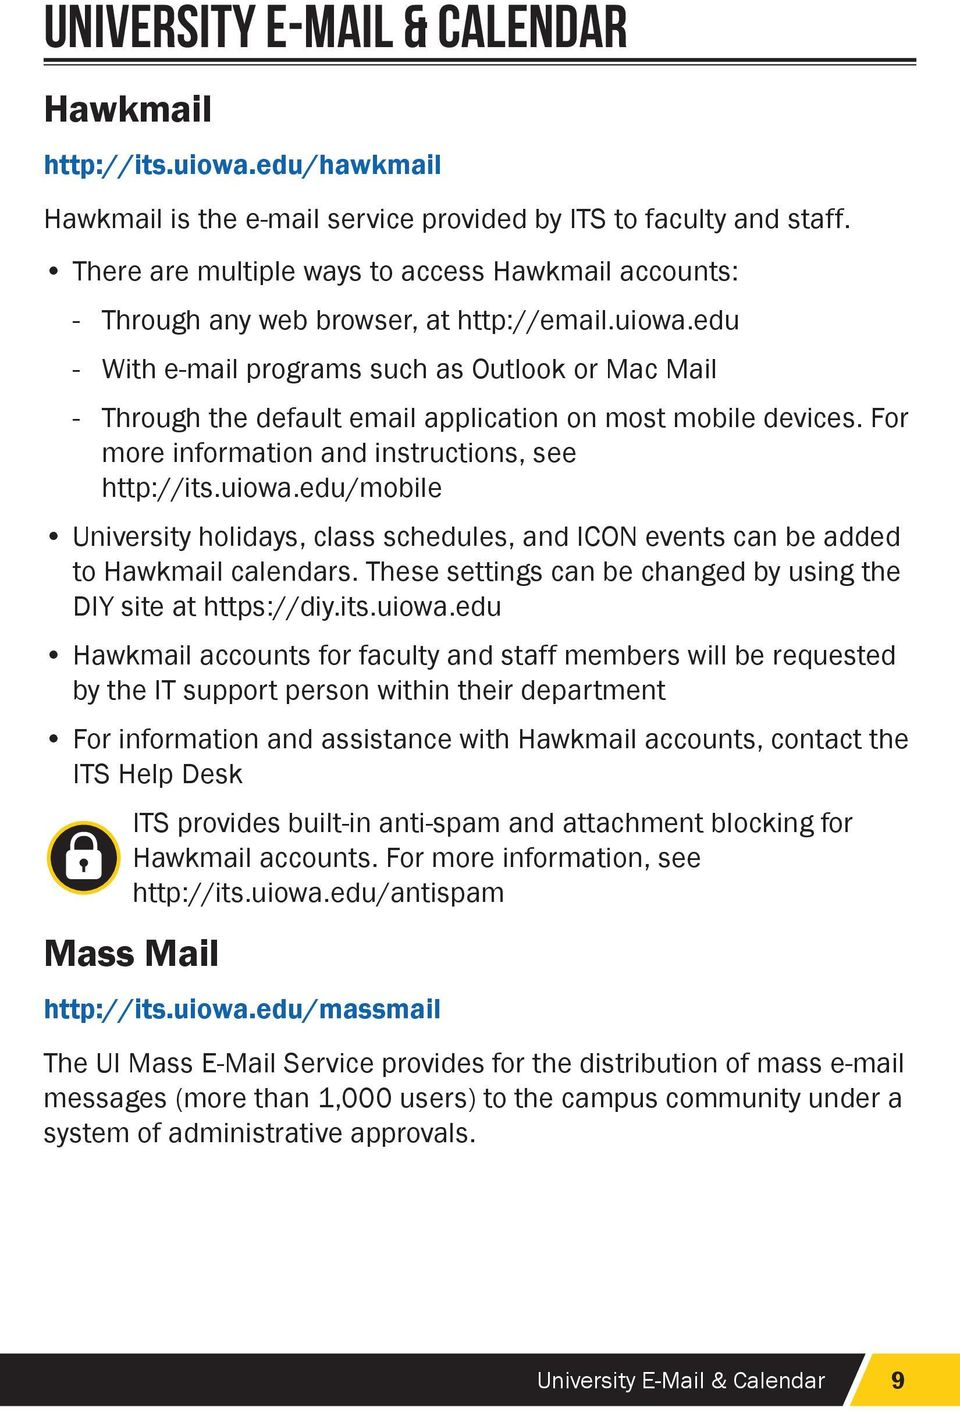 edu With e-mail programs such as Outlook or Mac Mail Through the default email application on most mobile devices. For more information and instructions, see http://its.uiowa.